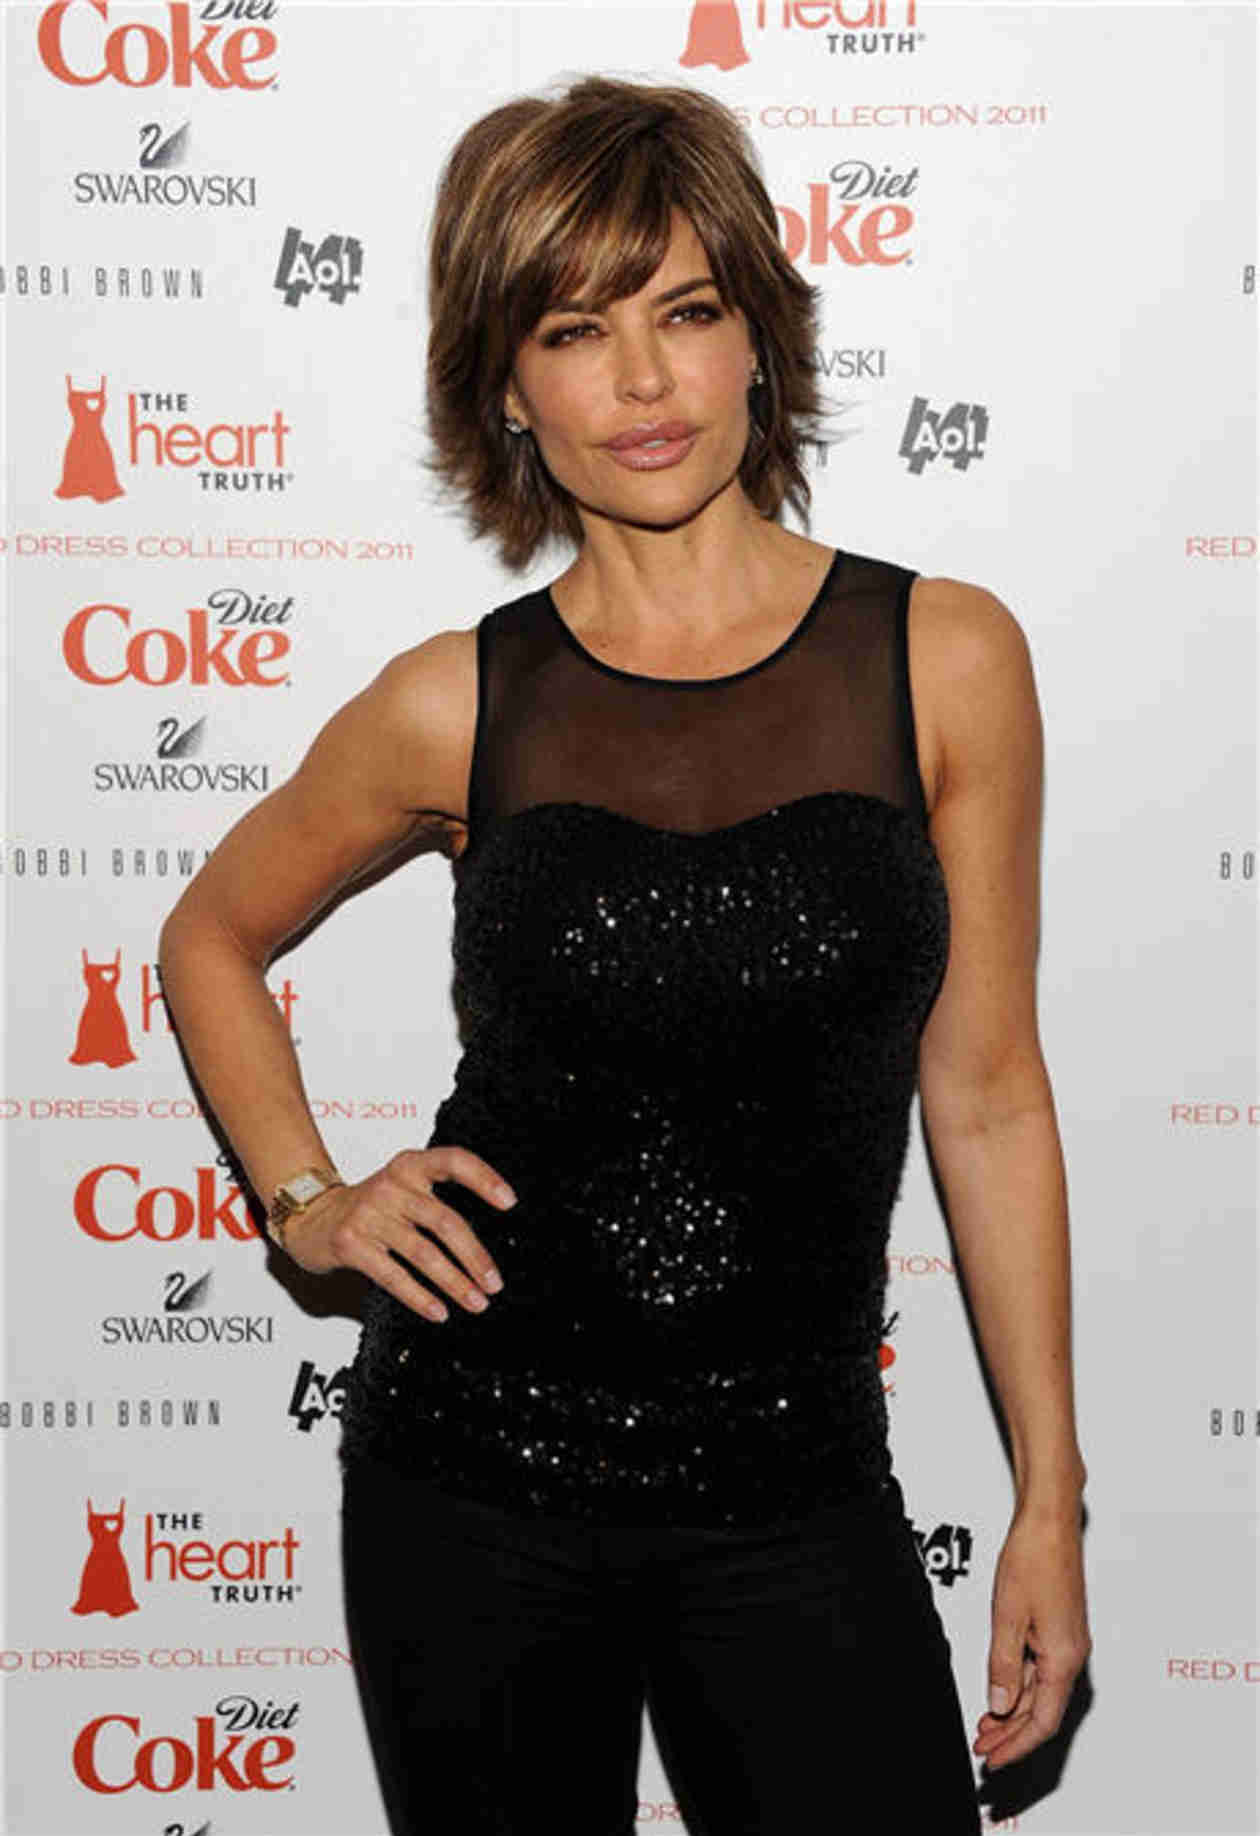 Lisa Rinna Celebrated Her 51st Birthday With the RHOBH Cast!